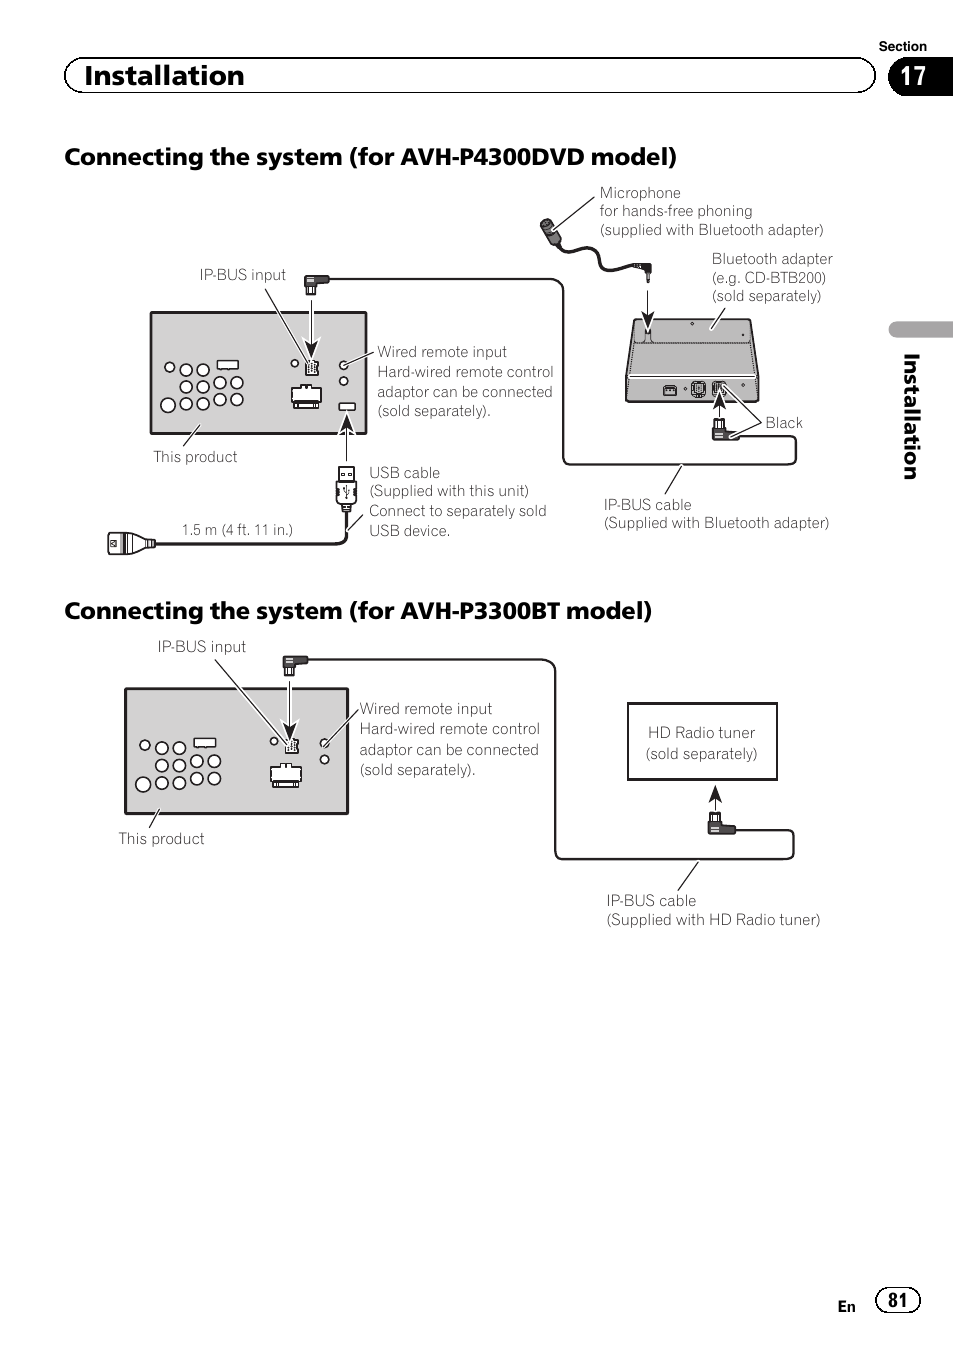 connecting the system (for avh-p4300dvd model), connecting the system (for  avh-p3300bt model), installation | pioneer avh p4300dvd user manual | page  81 /